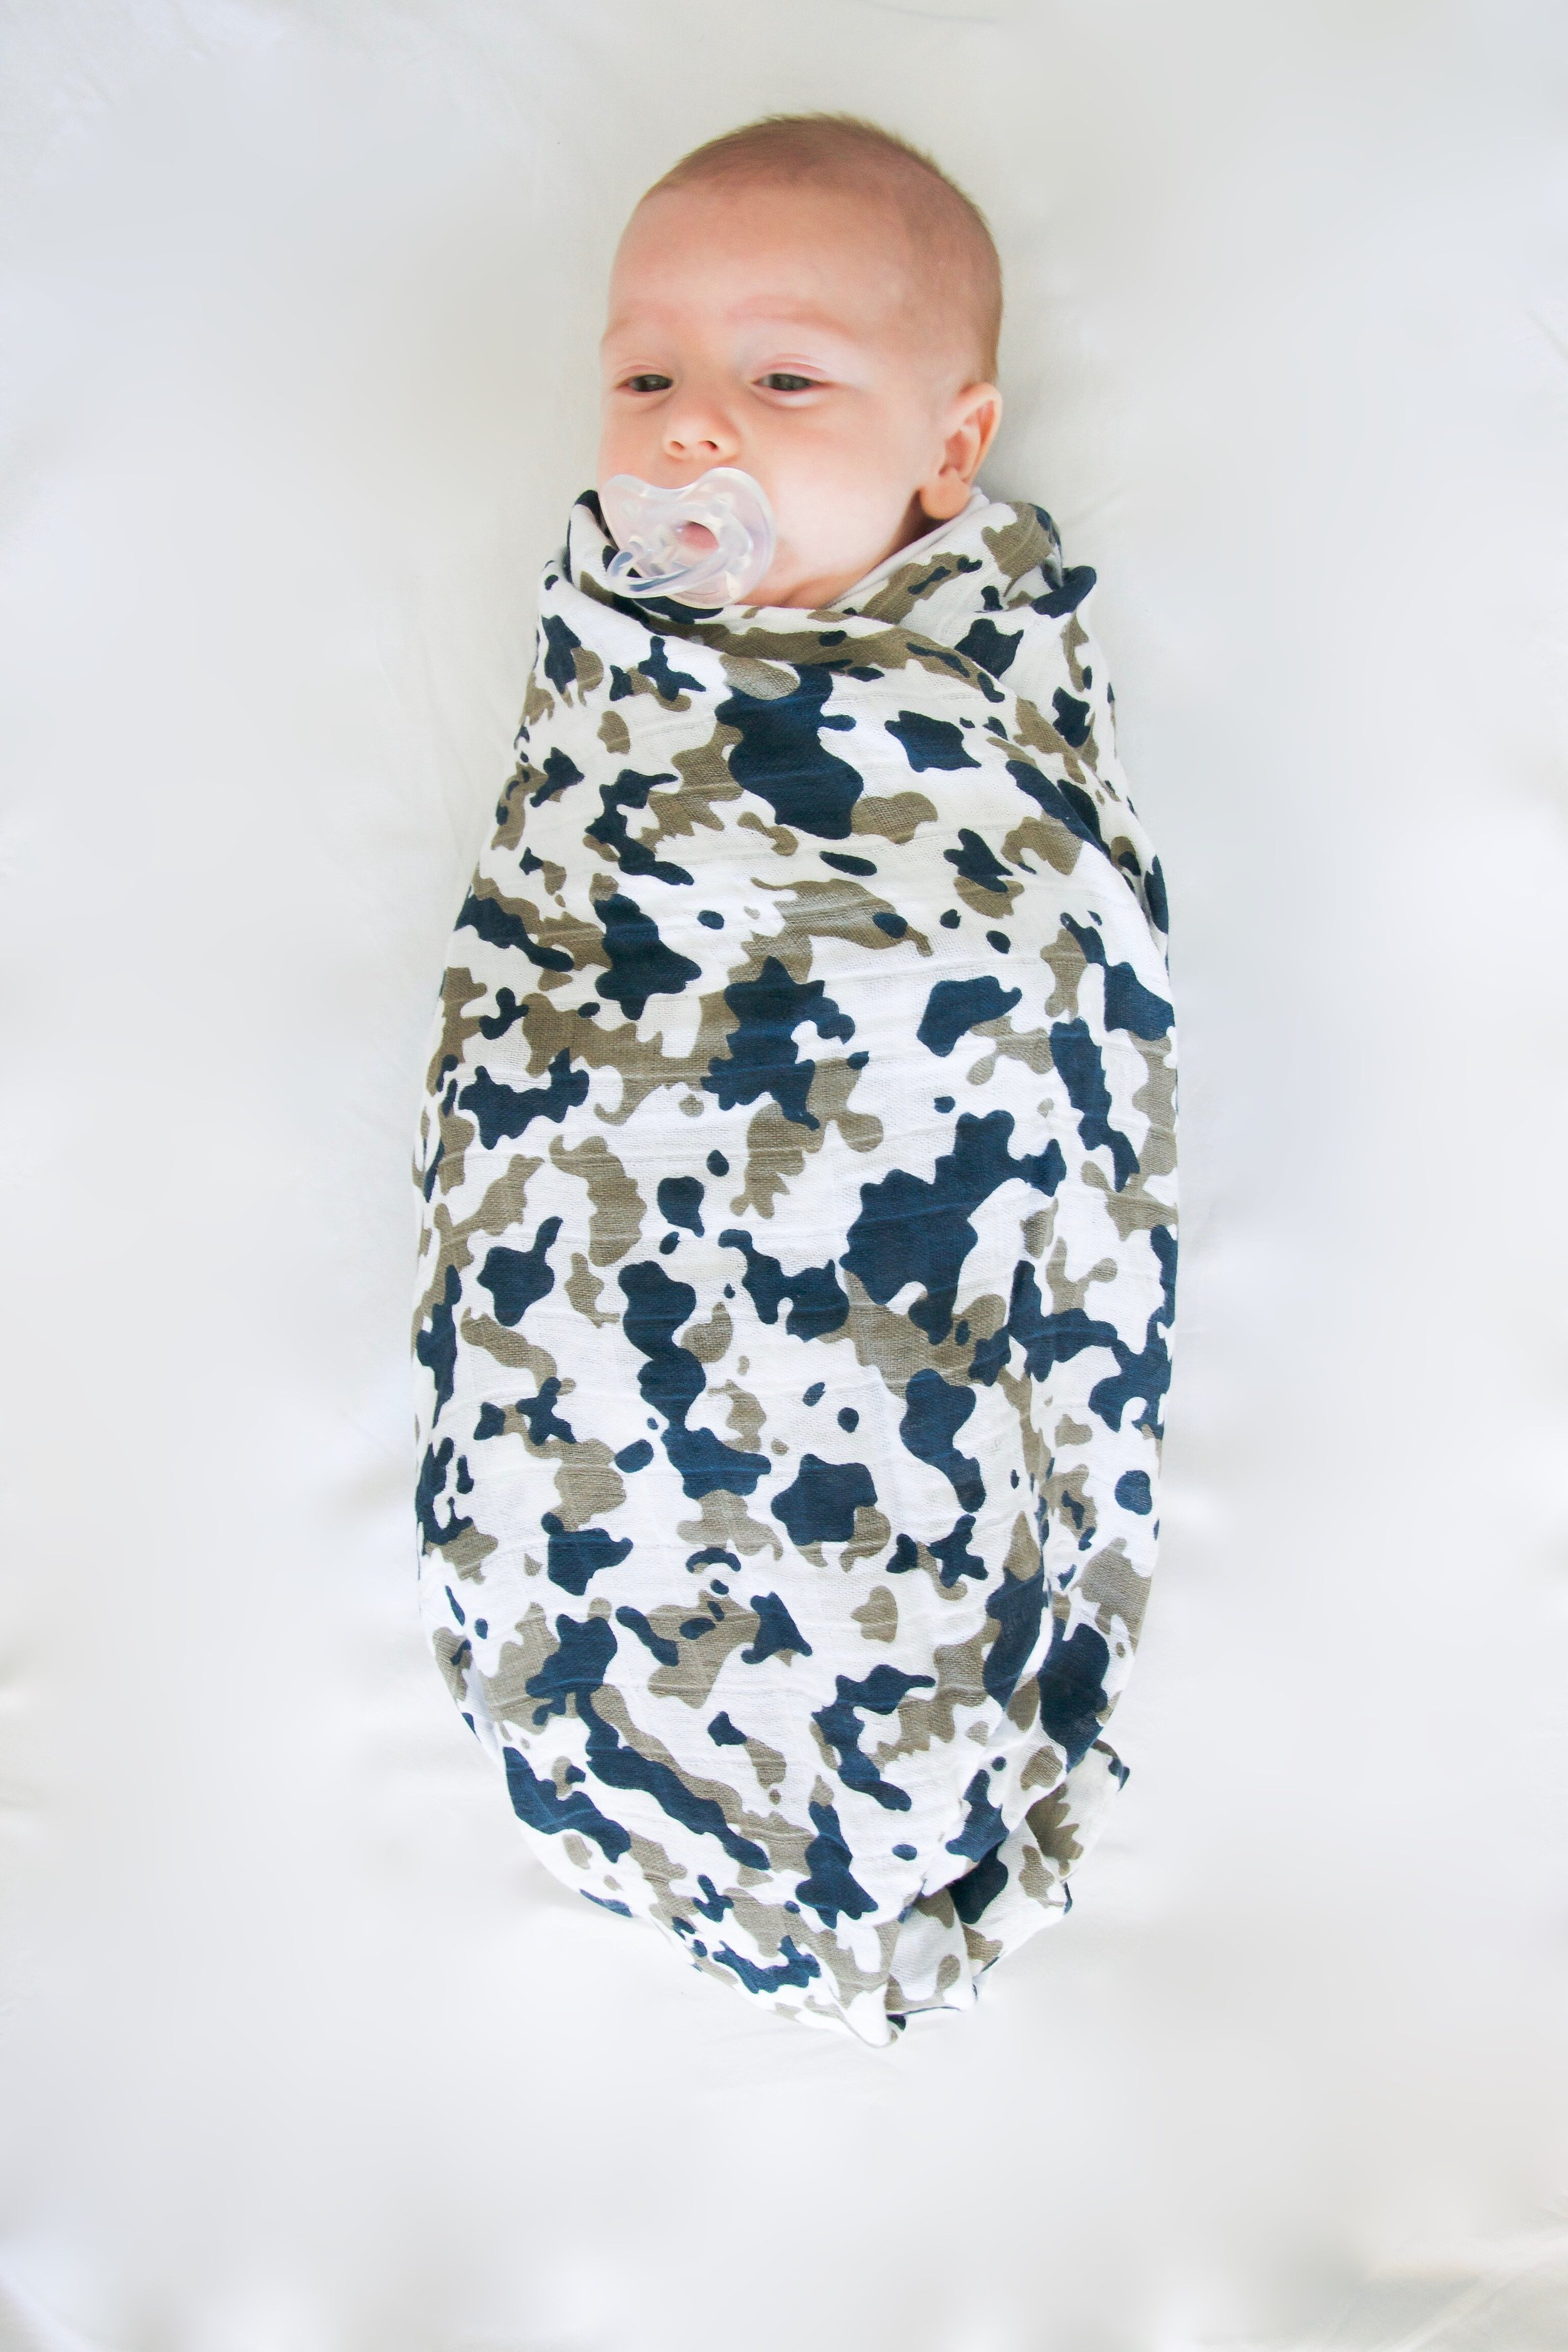 Here's our friends baby swaddled in our  Camo Cotton Muslin Swaddle